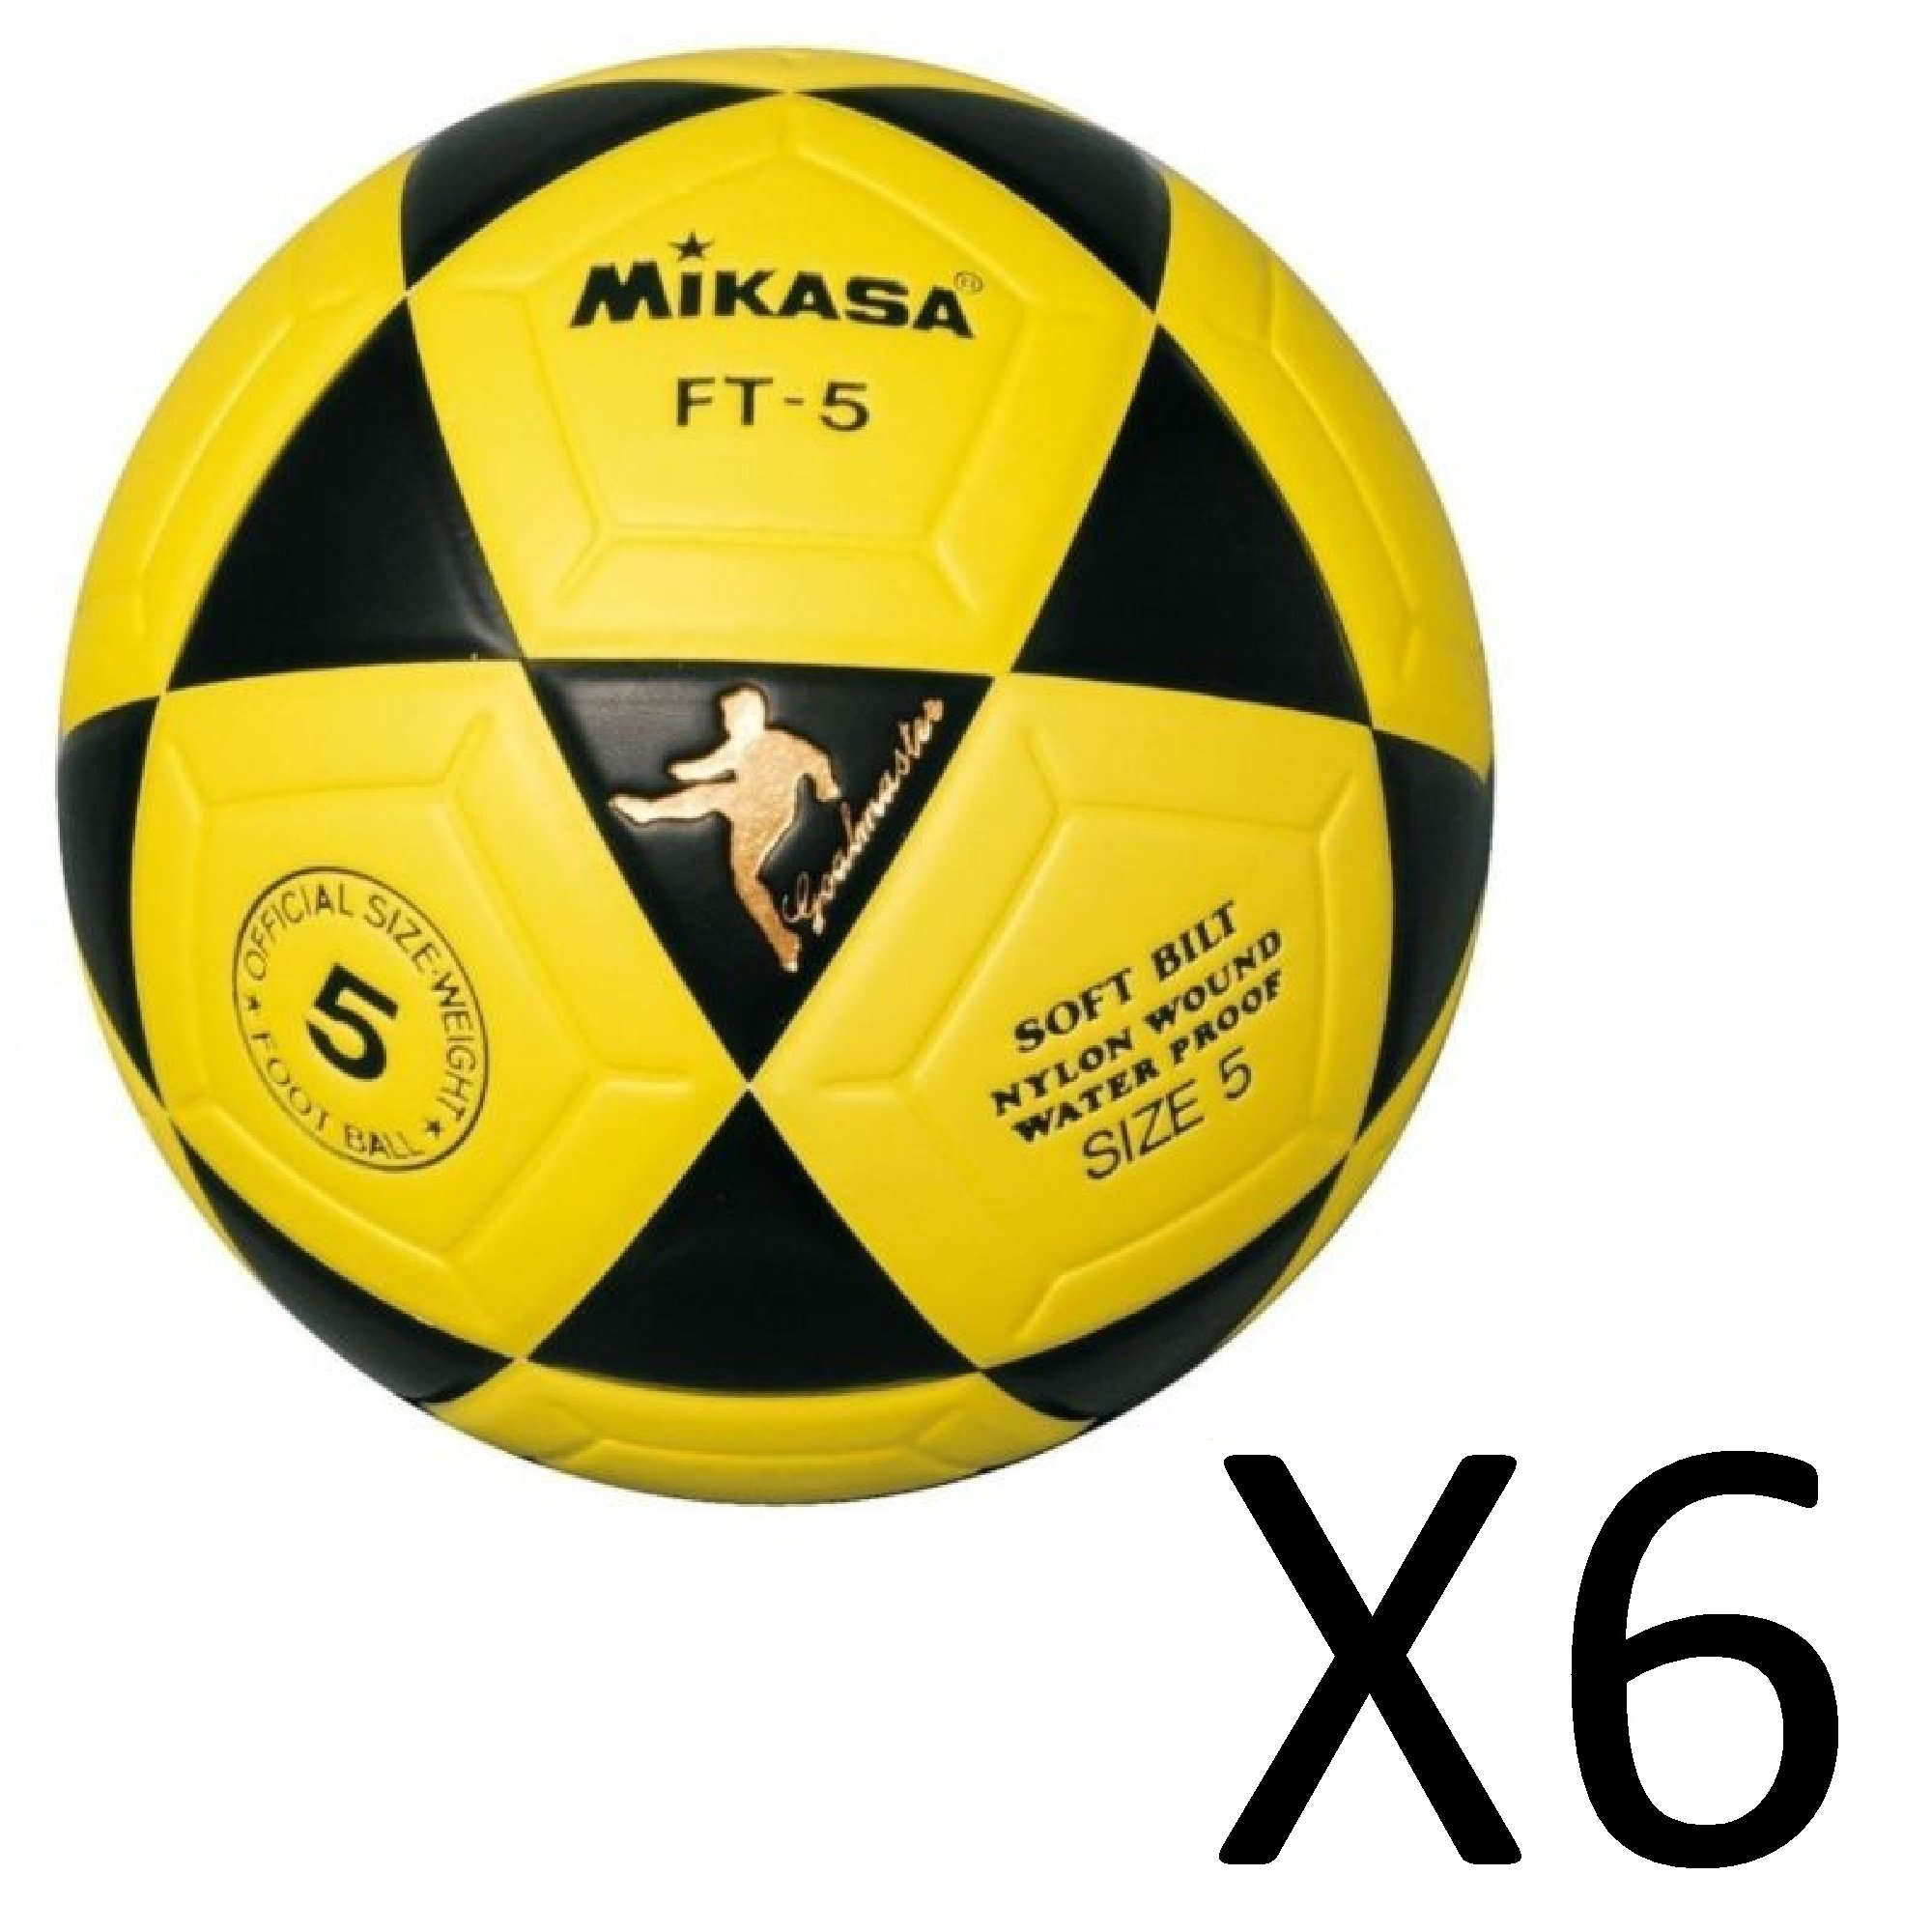 Mikasa Official Goal Master Soccer Football Ball Size 5 Yellow w/ Black (6-Pack)